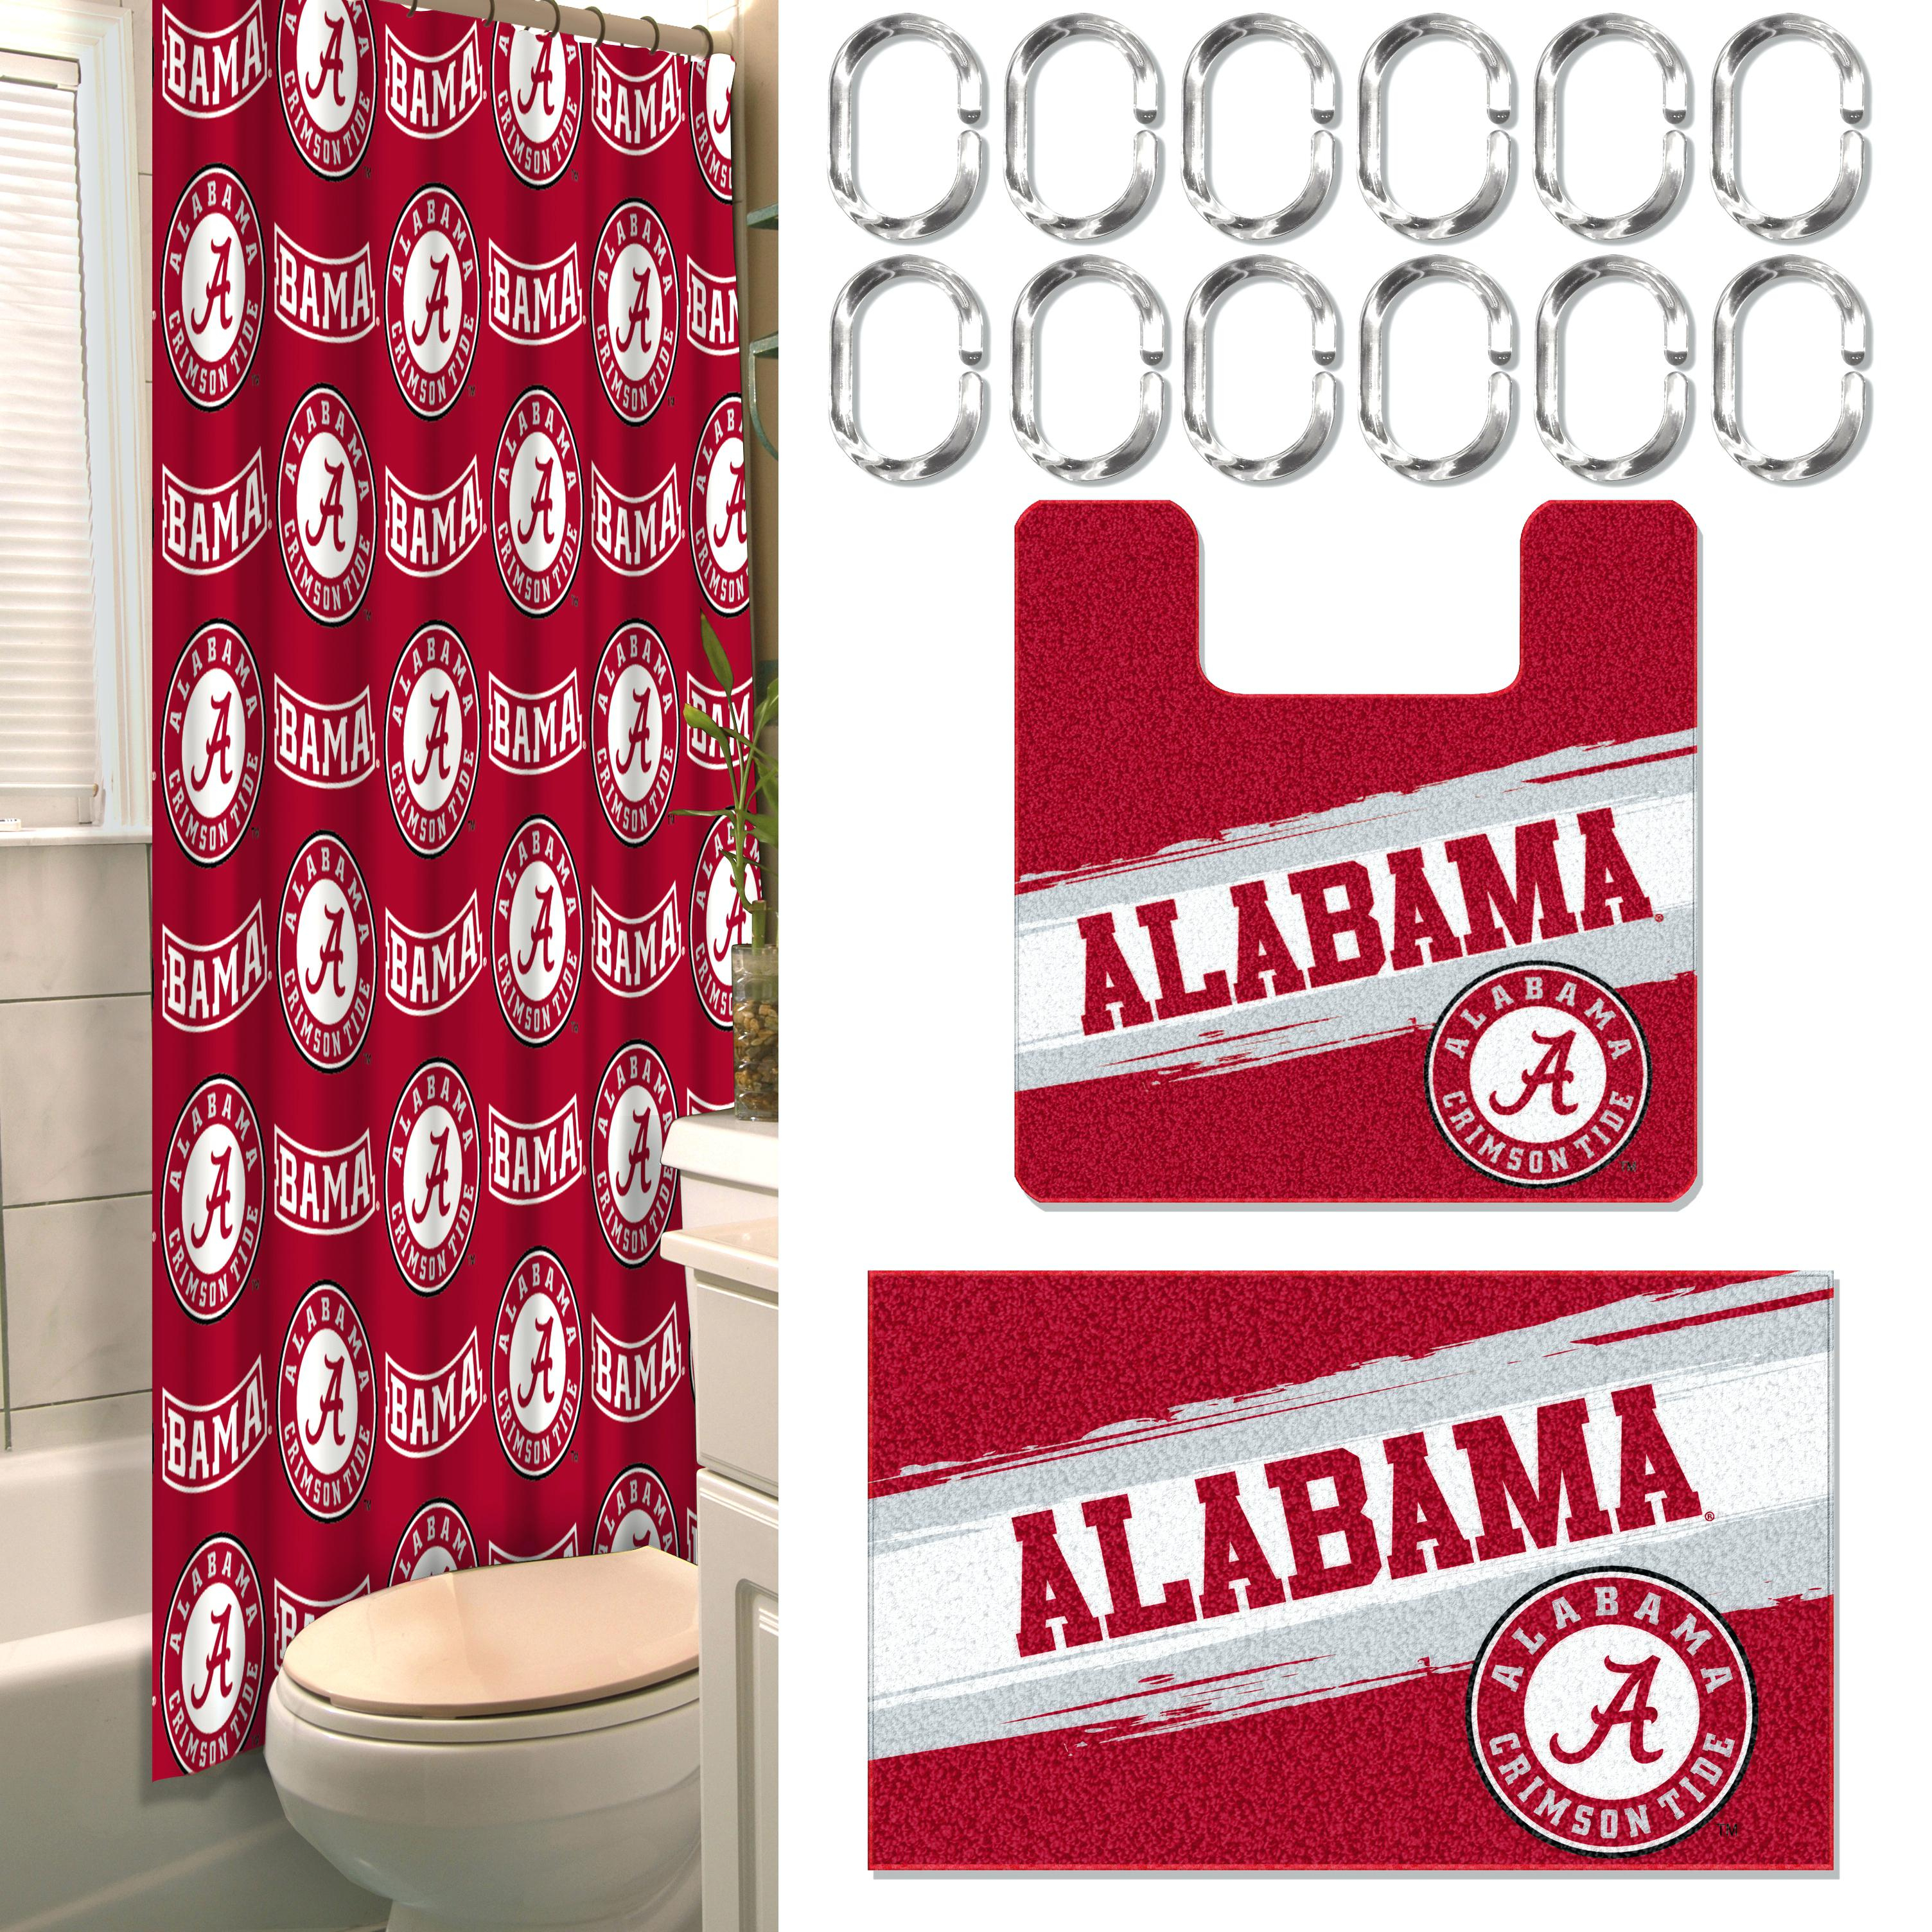 Football Shower Curtain Rings • Shower Curtains Ideas